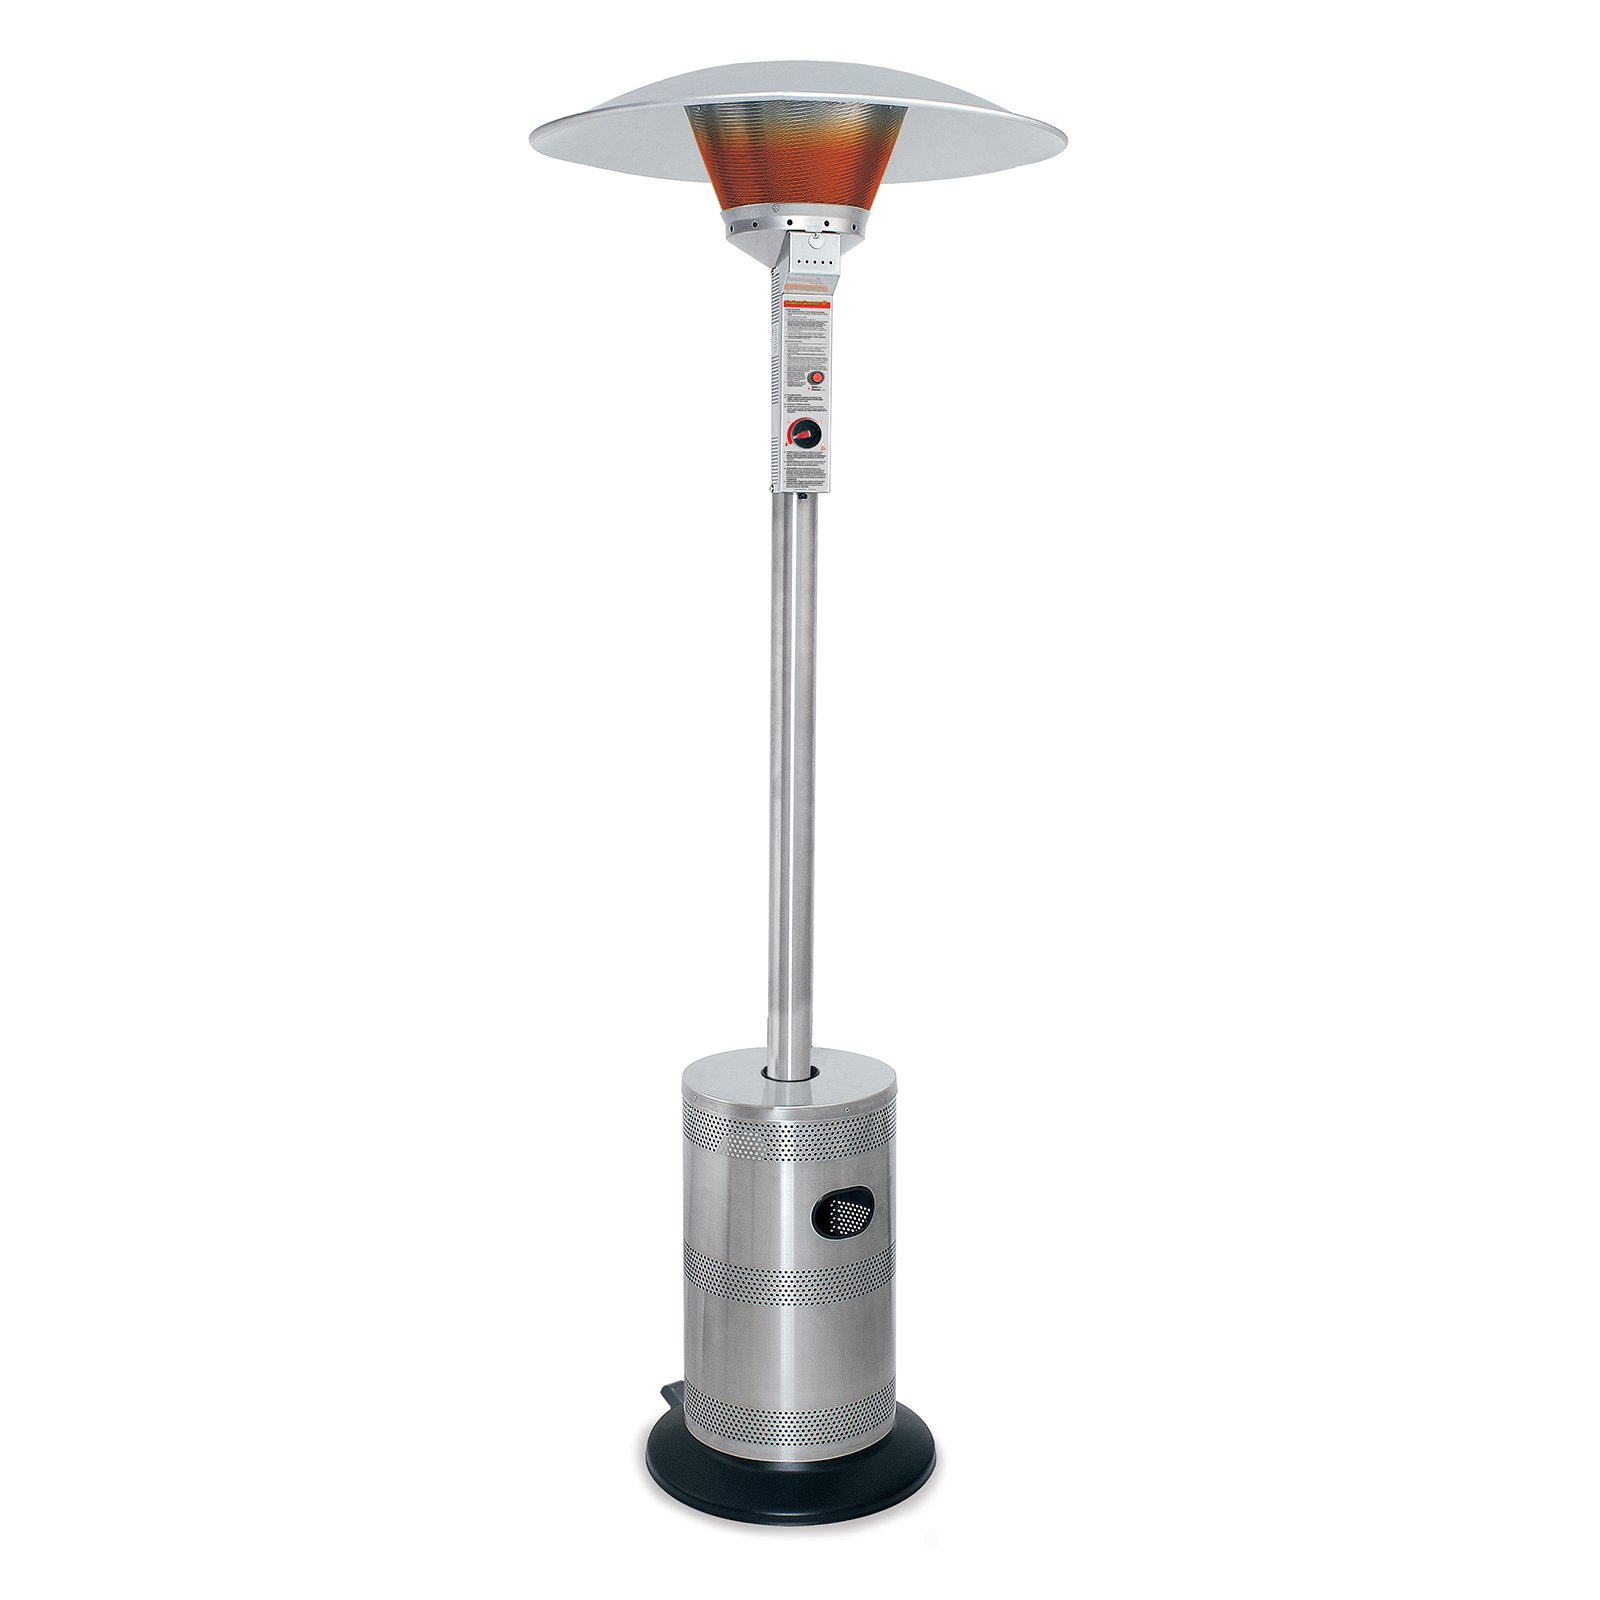 Endless Summer Commercial Outdoor Propane Gas Patio Heater by Blue Rhino Global Sourcing Inc